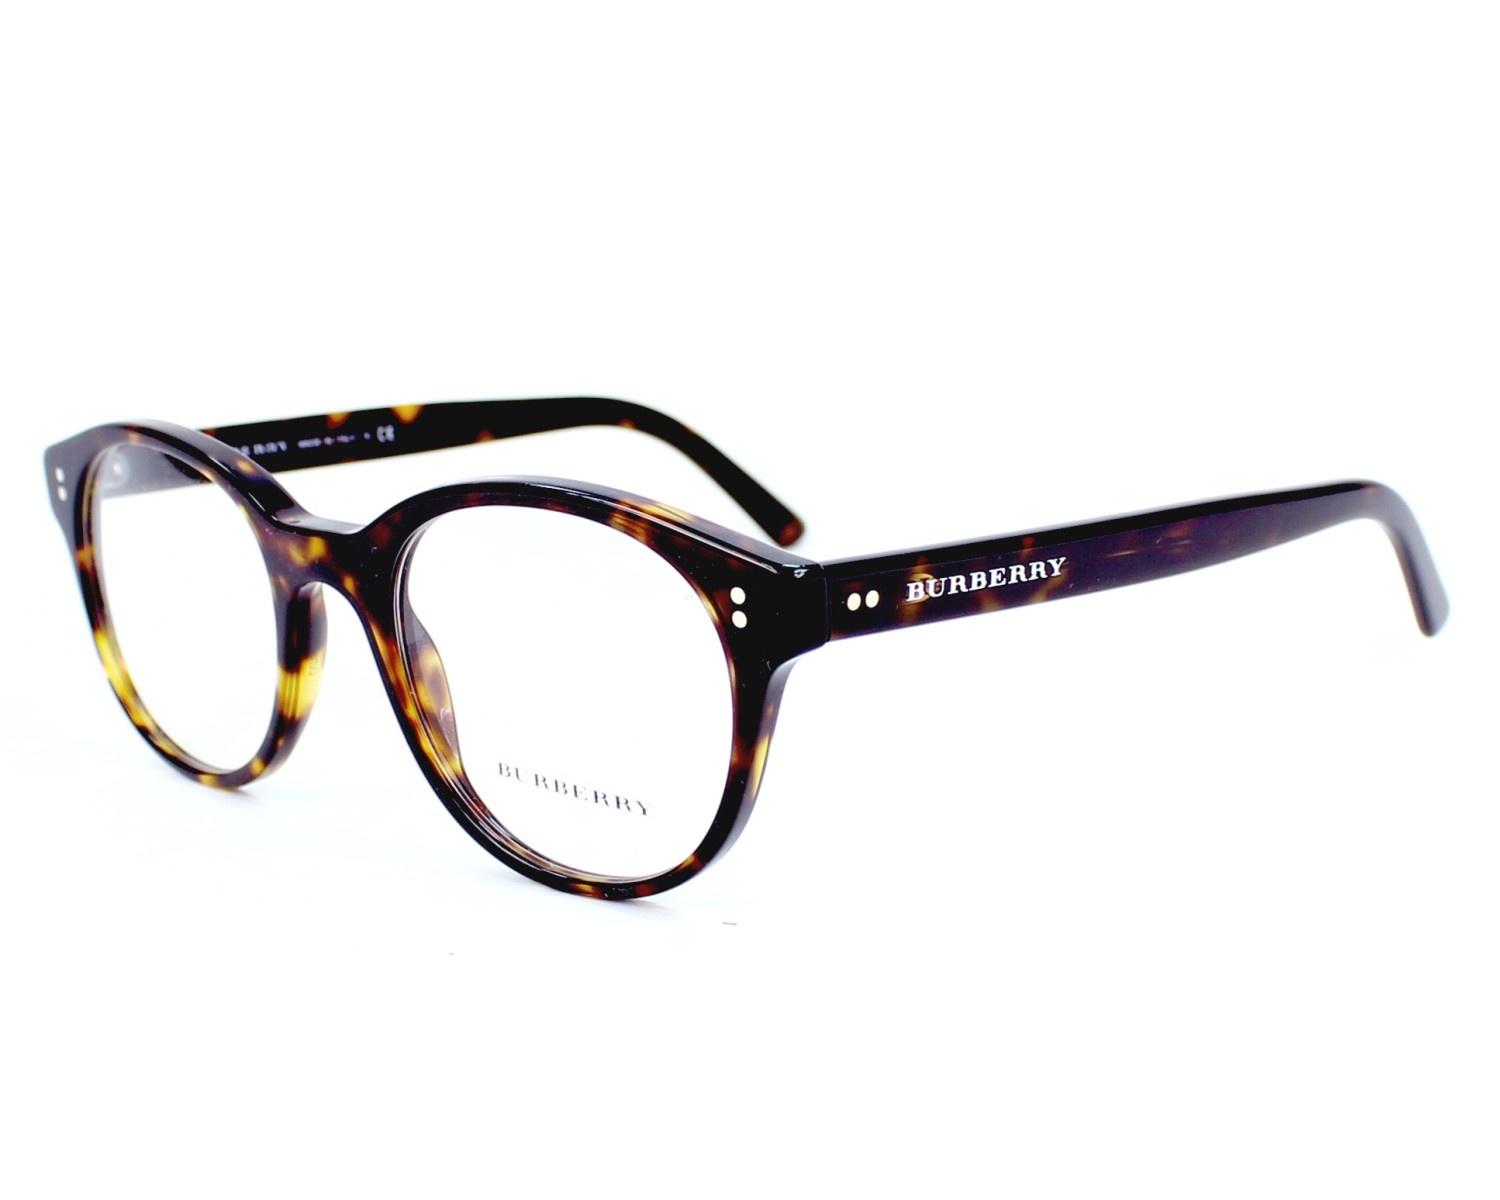 burburry glasses z9su  Burberry has been added to your cart